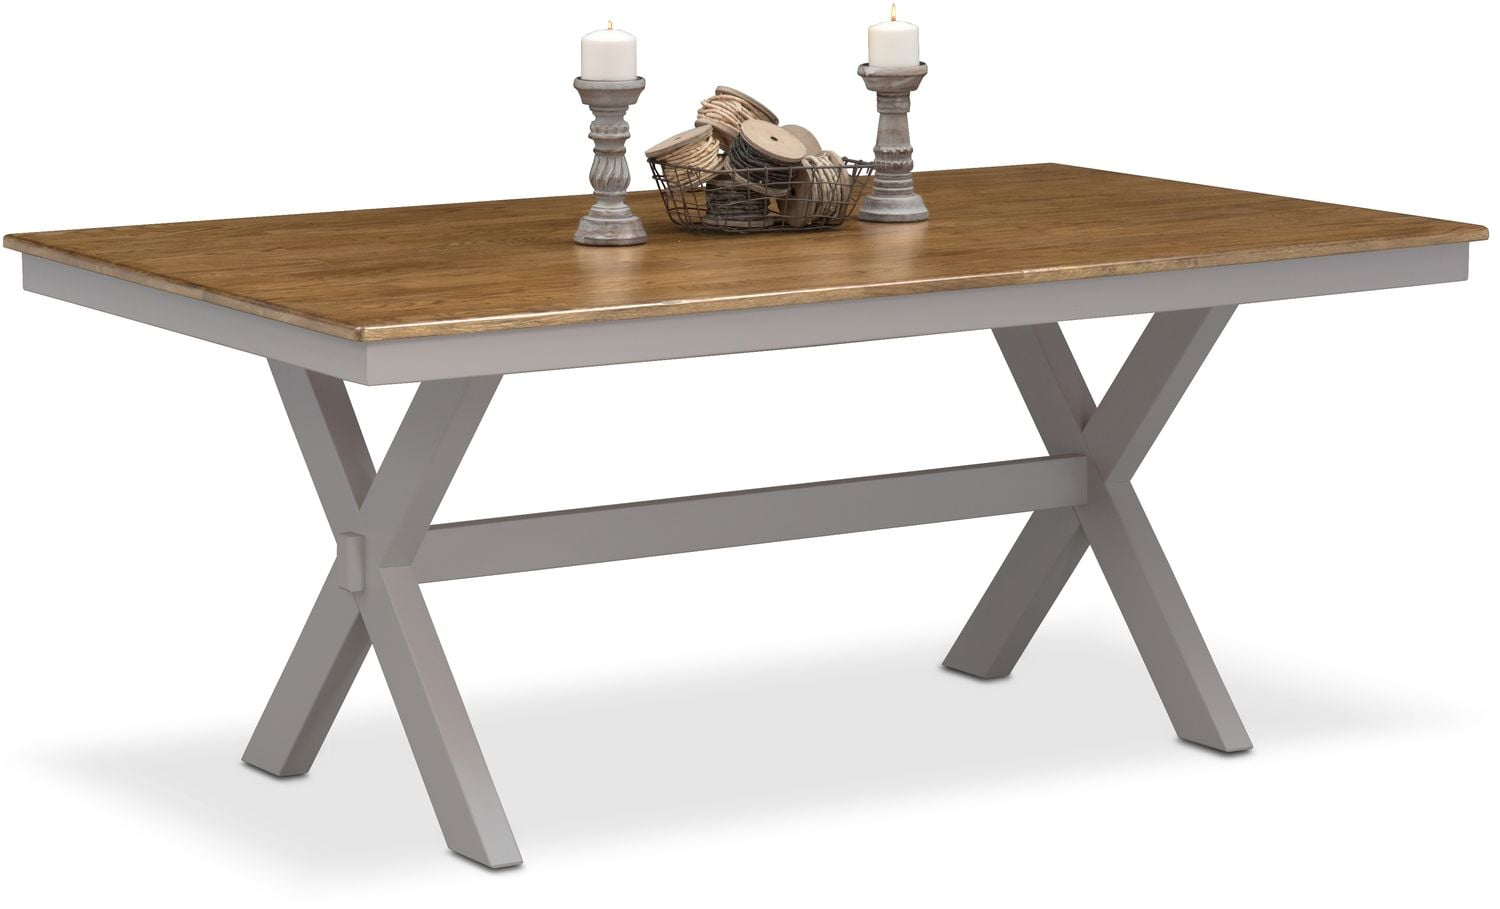 Nantucket Trestle Table - Oak and Gray